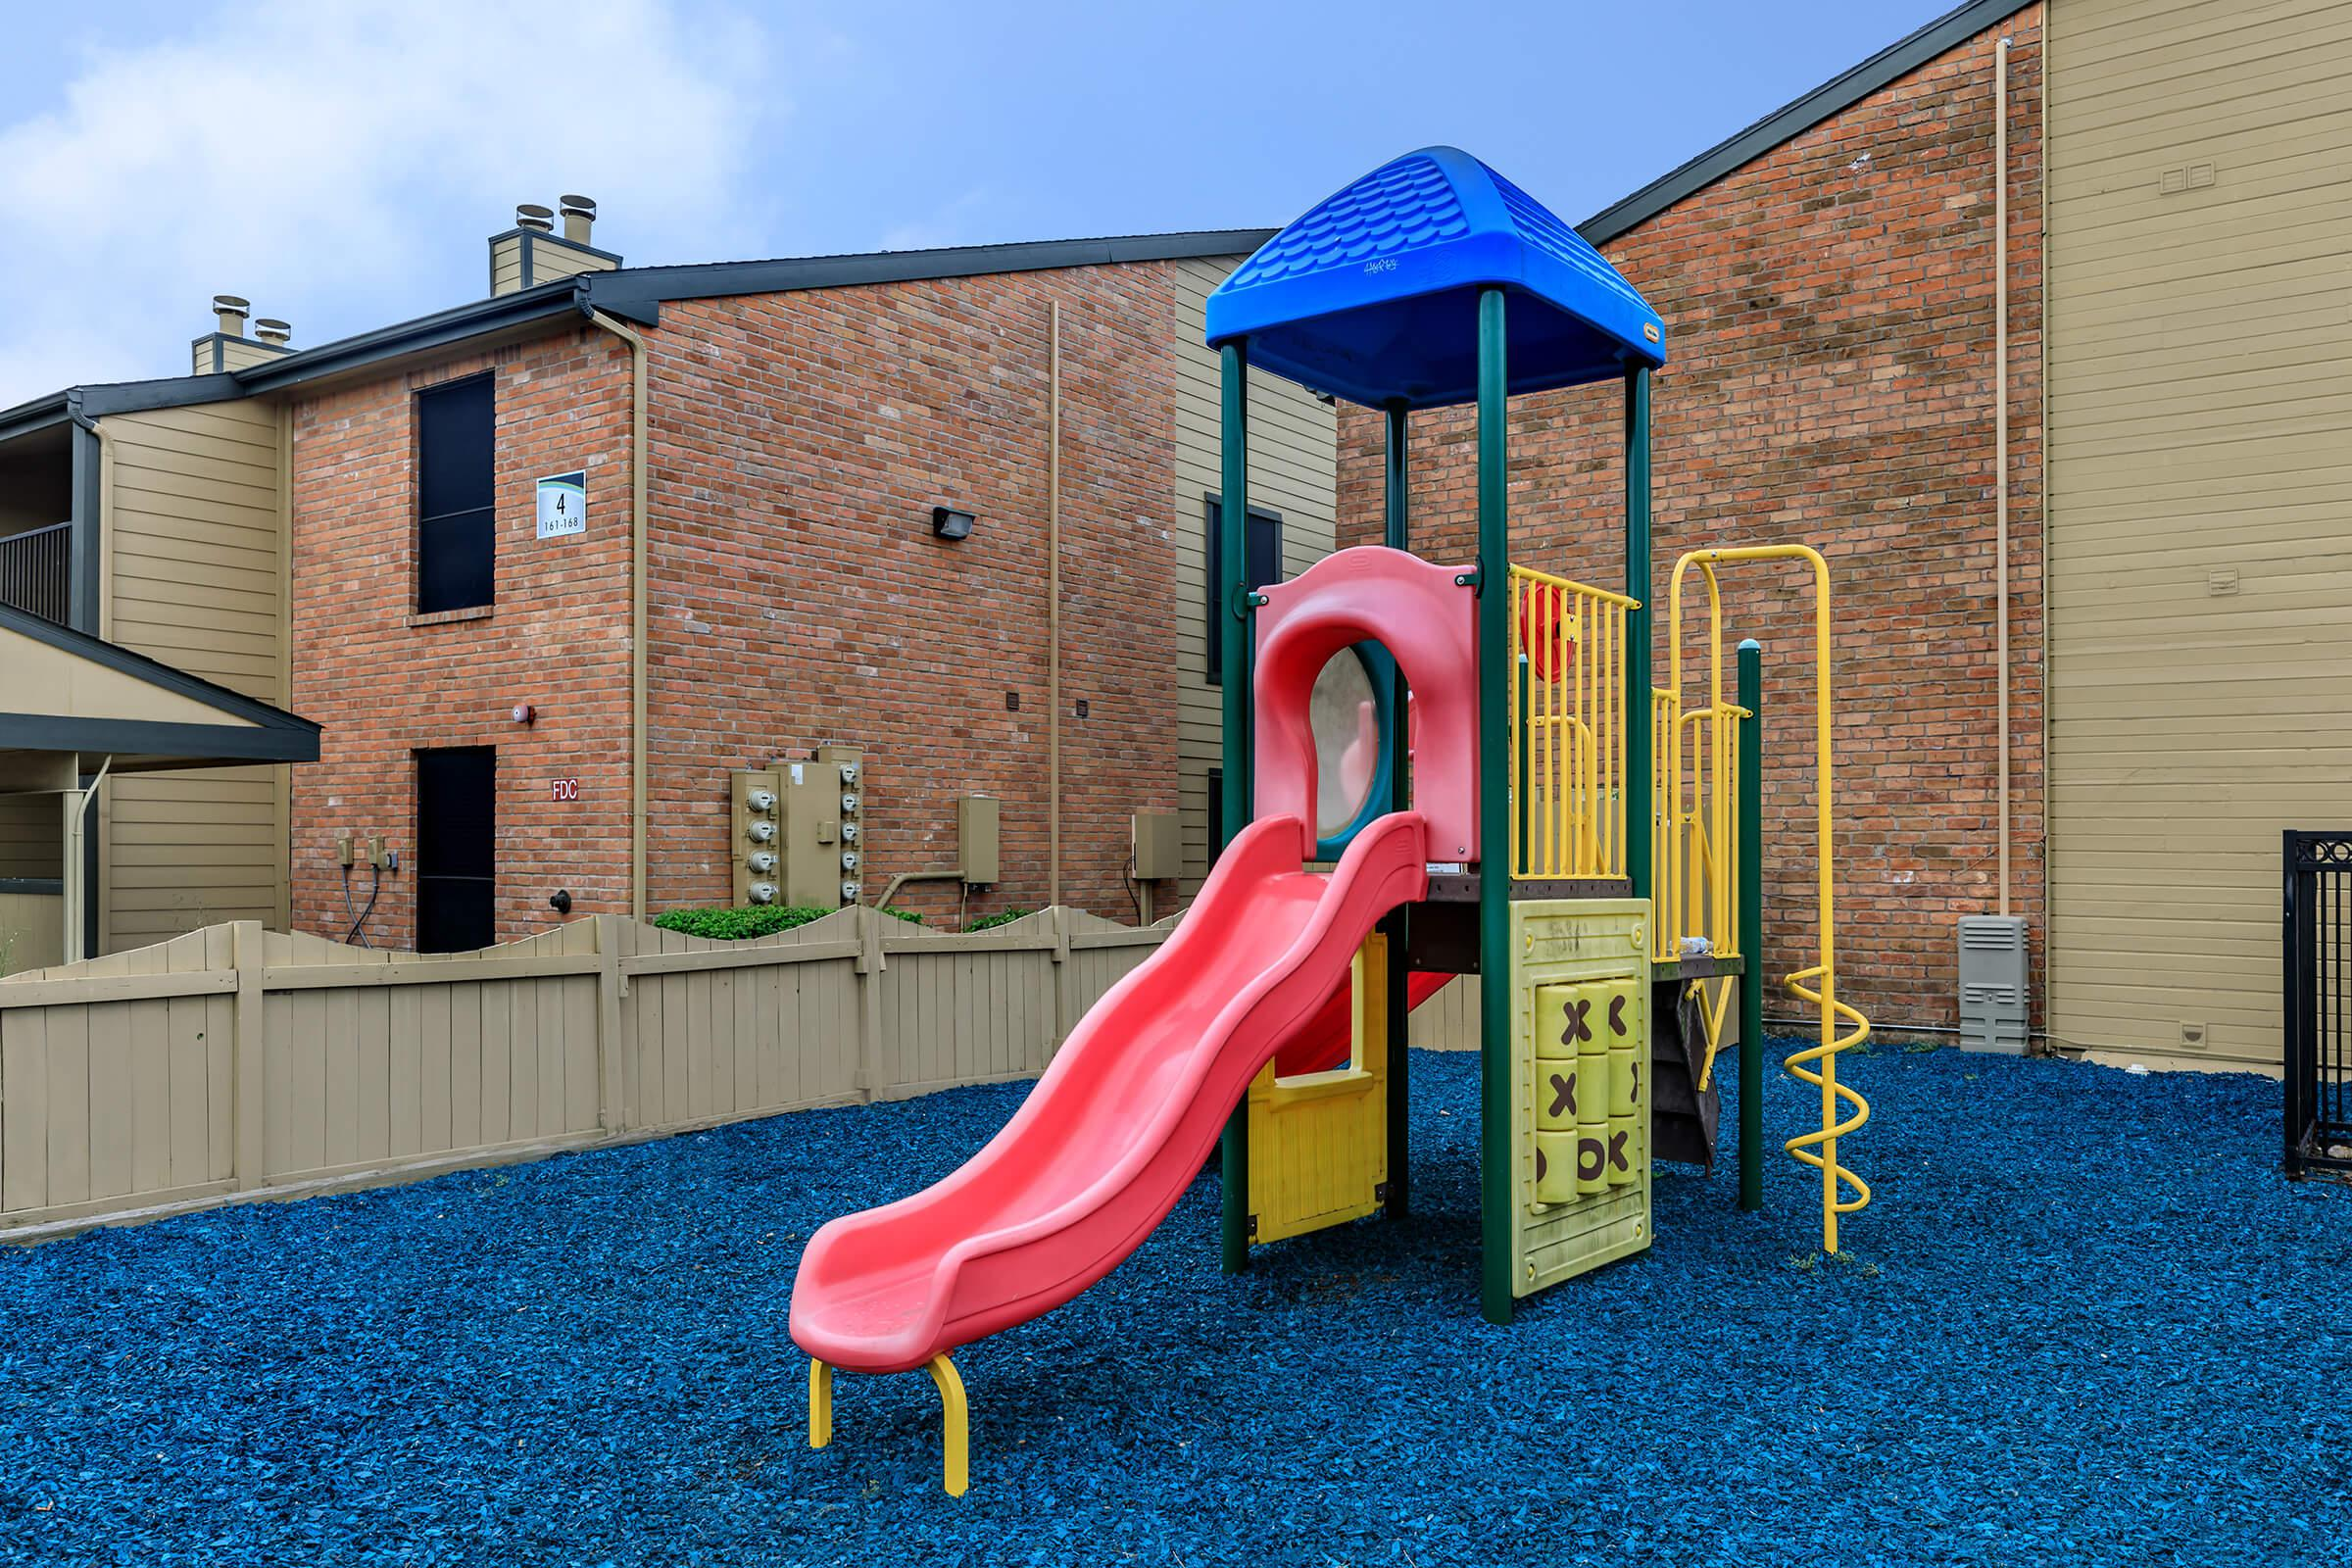 CHARMING PLAY AREA